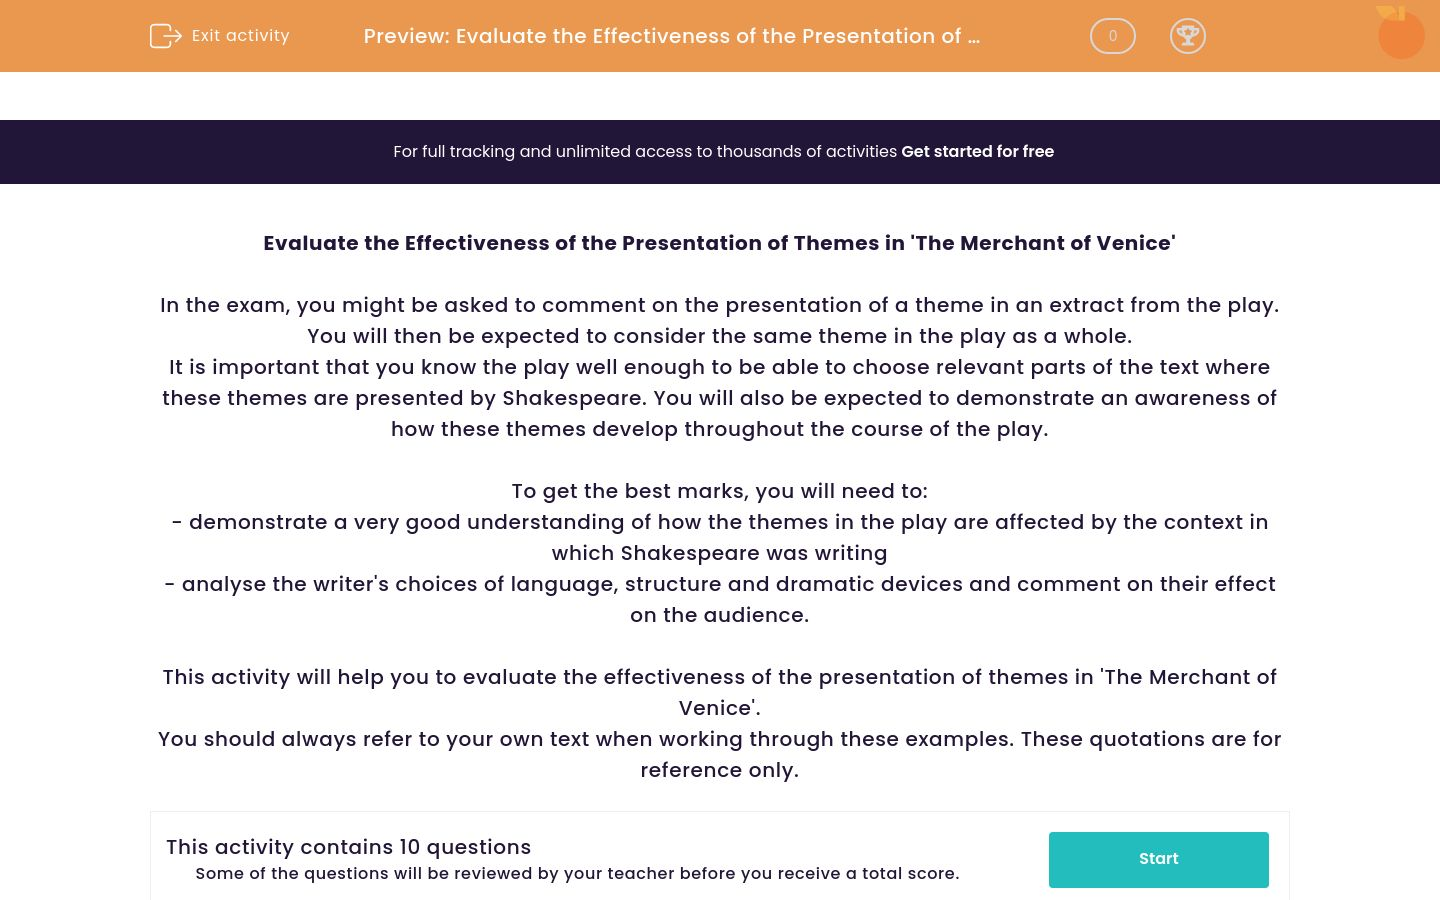 'Evaluate the Effectiveness of the Presentation of Themes in 'The Merchant of Venice'' worksheet